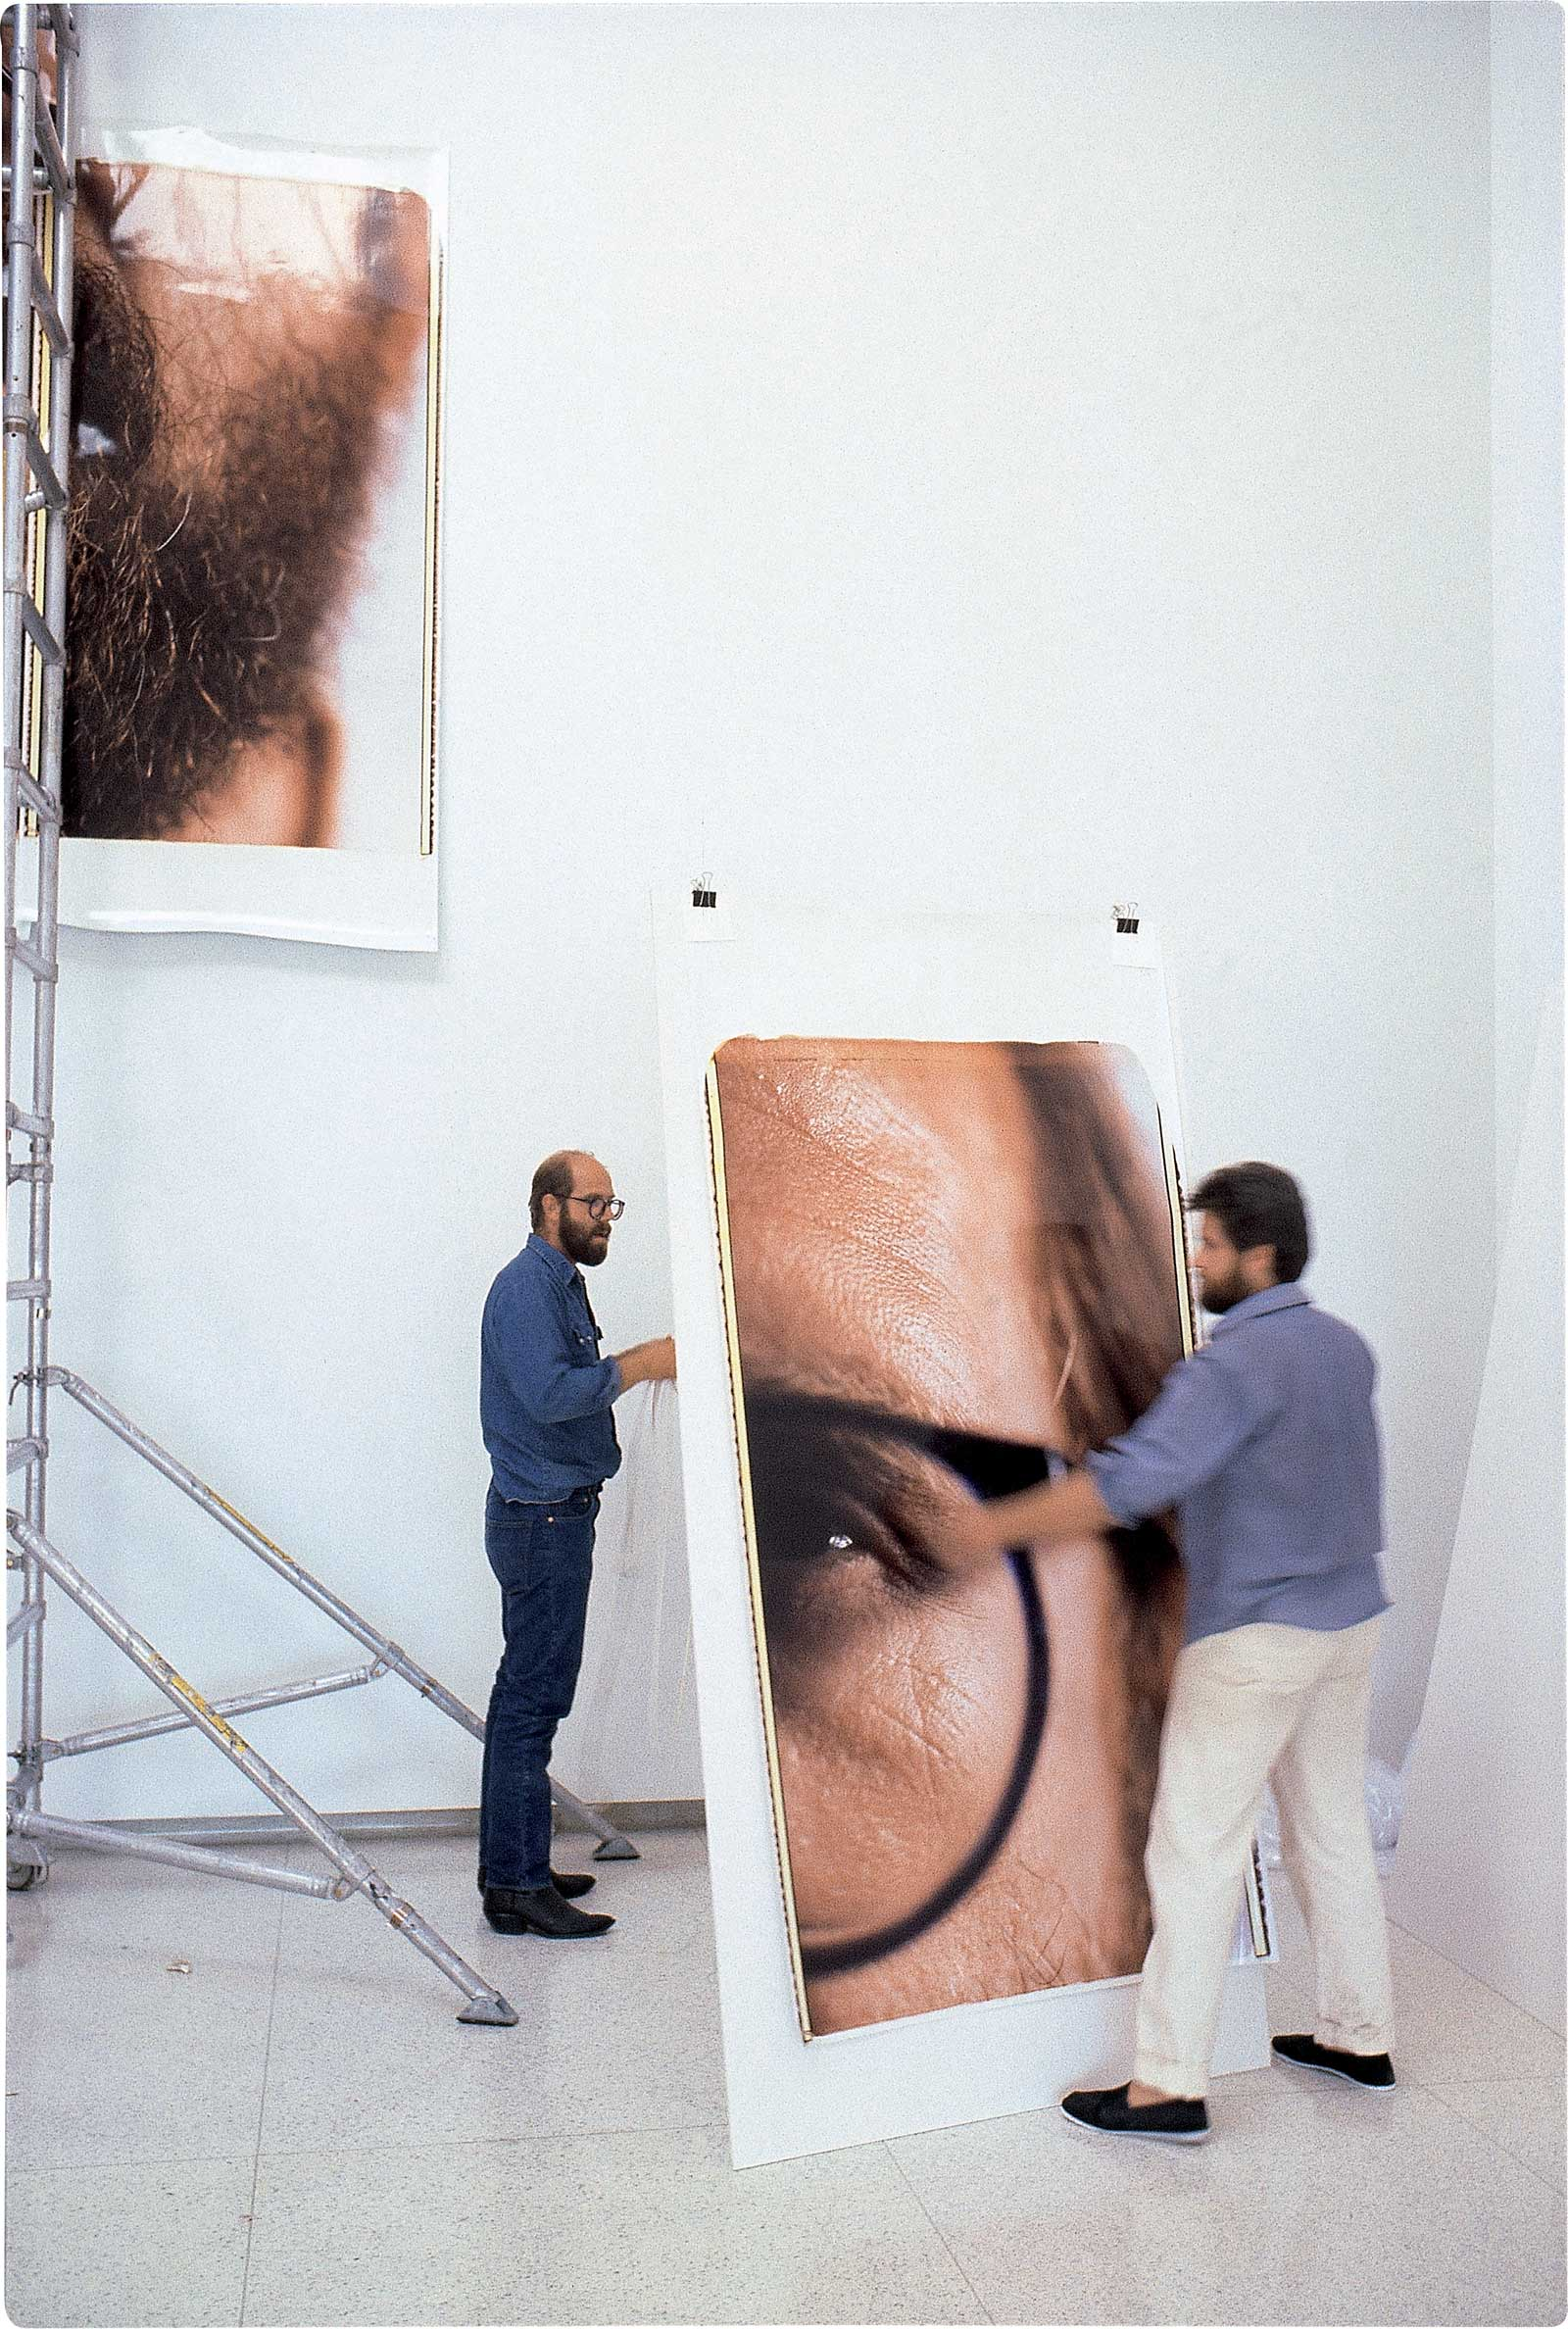 Chuck Close creating 'Self-Portrait/Composite/Six Parts', 1980